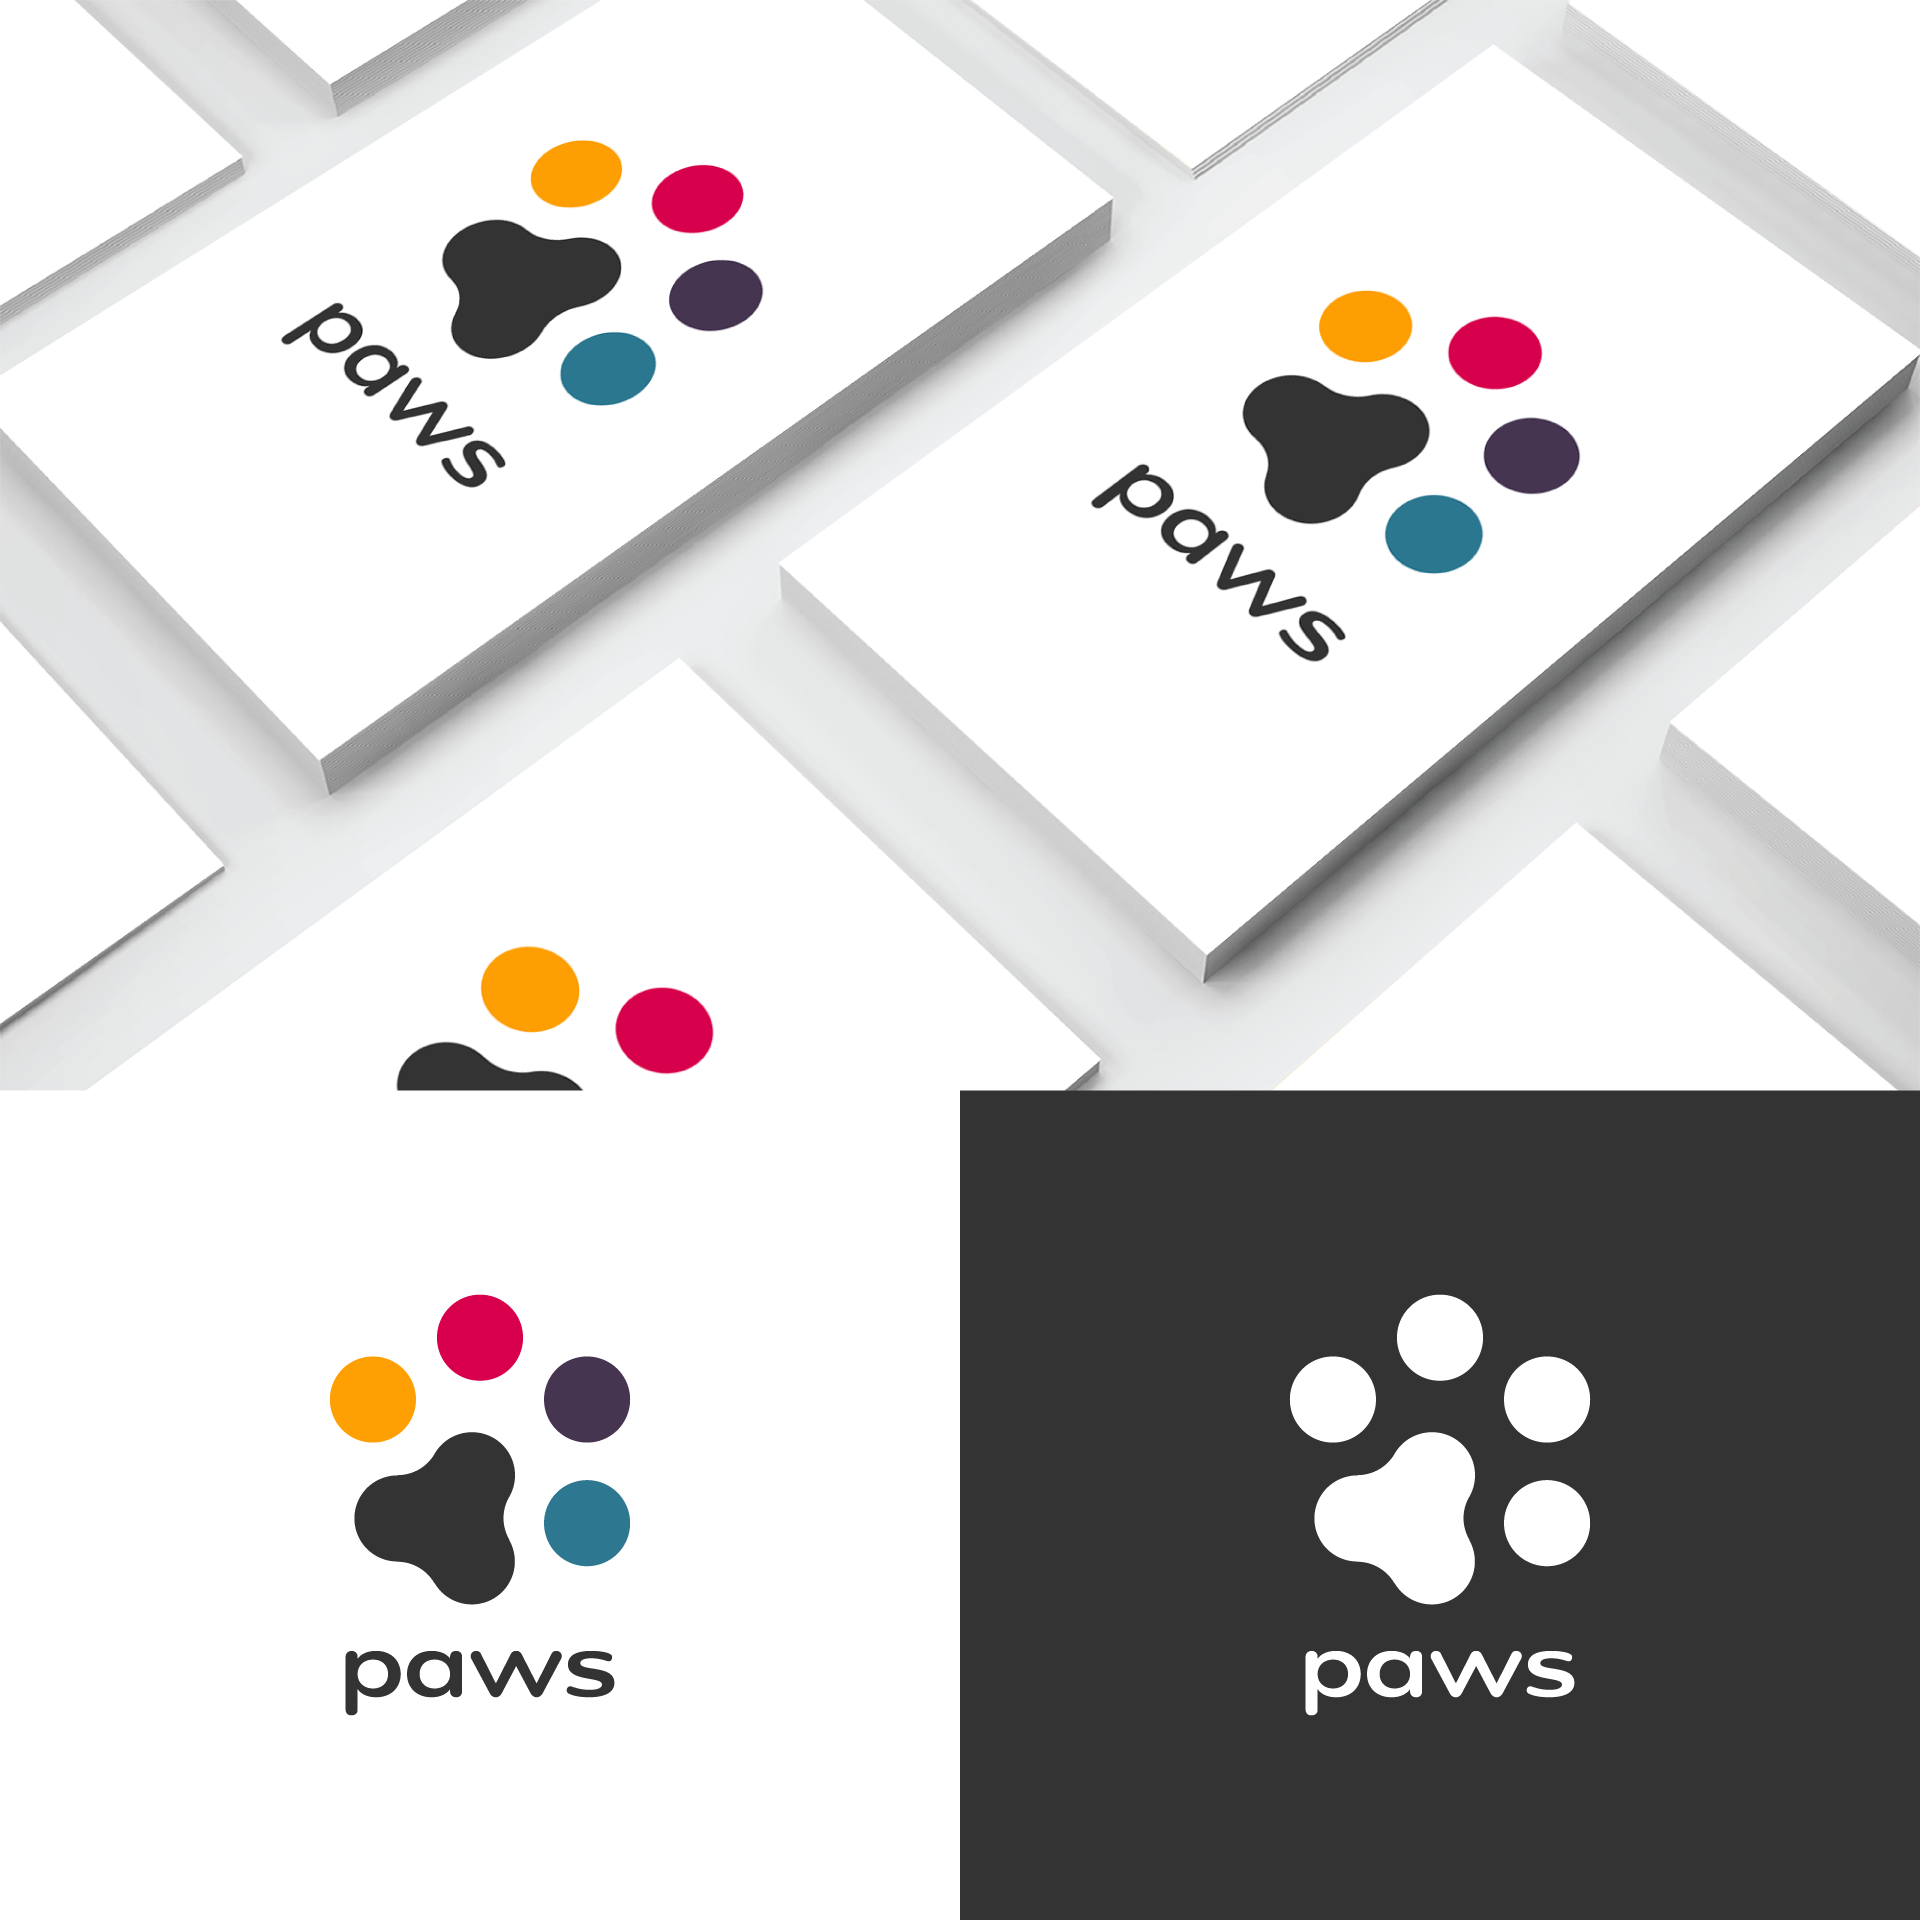 paws_square.png